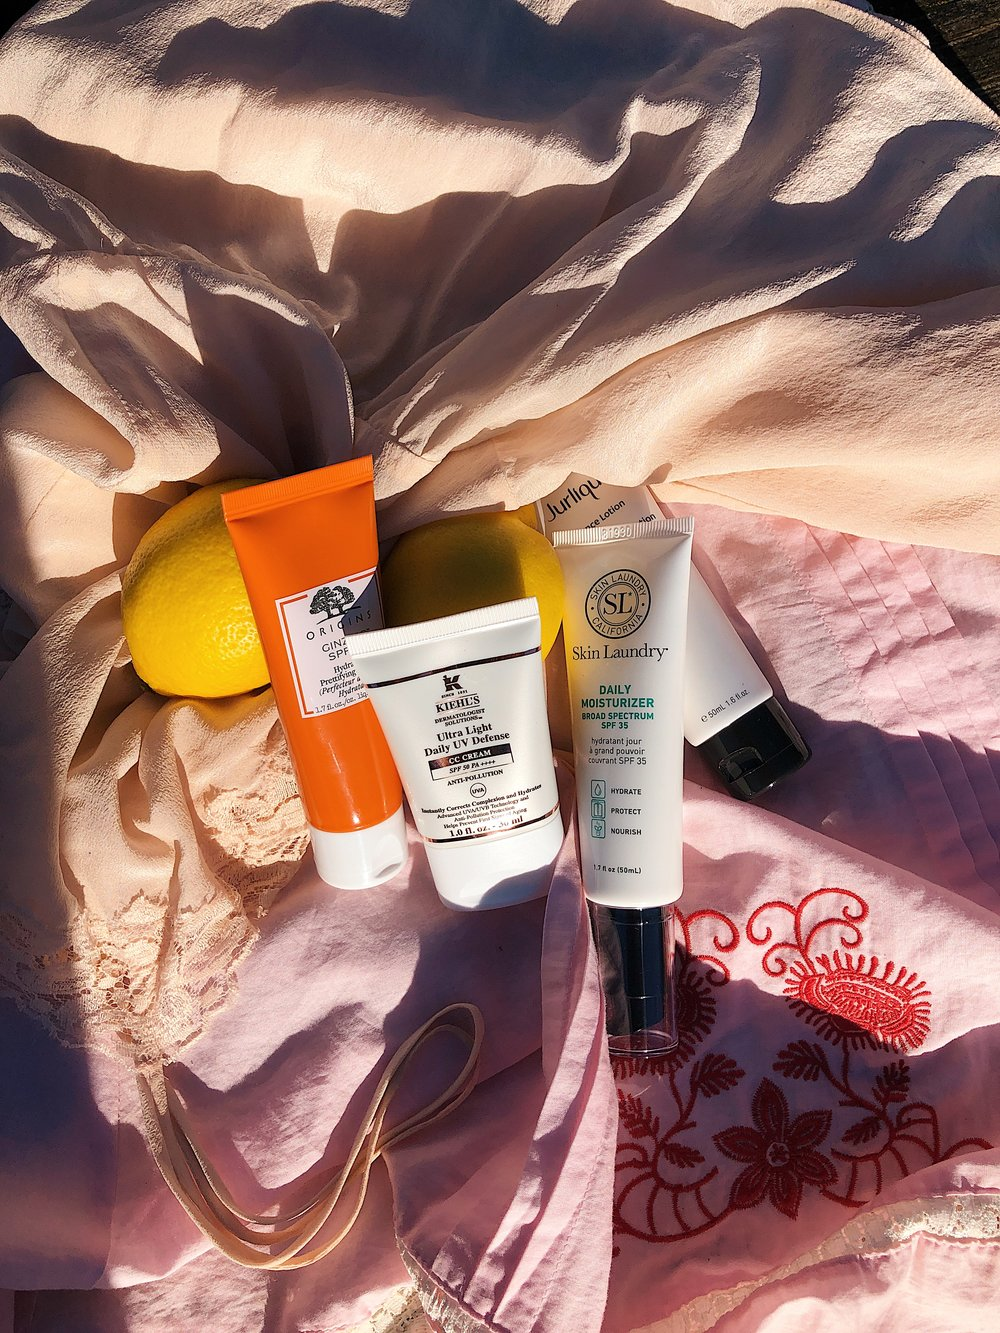 - SPF is the most important product to tick off your packing list and when I started planning my beauty bag for my up-coming 5 month trip, SPF was the one category I wanted to get nailed down to a T. Having a few different options was key; the ultra protecting SPF50 that I could slather on for days at the beach to the tinted, lighter options that double up as a tinted moisturiser for when I want to look a little more glam or for shoot days. Ideally when it comes to picking your suncream, you need to look for ones that offer UVA and UVB protection to ensure you are covered for ageing (UVA) and burning (UVB) and really you should be using factor 50 on your face to keep damage to an absolute minimum. From satin like textures to lightly tinted glow boosting creams for when you don't want to wear makeup but your skin needs a slight radiance boost, below are the top 4 SPF's I'm taking with me to Australia and elsewhere…